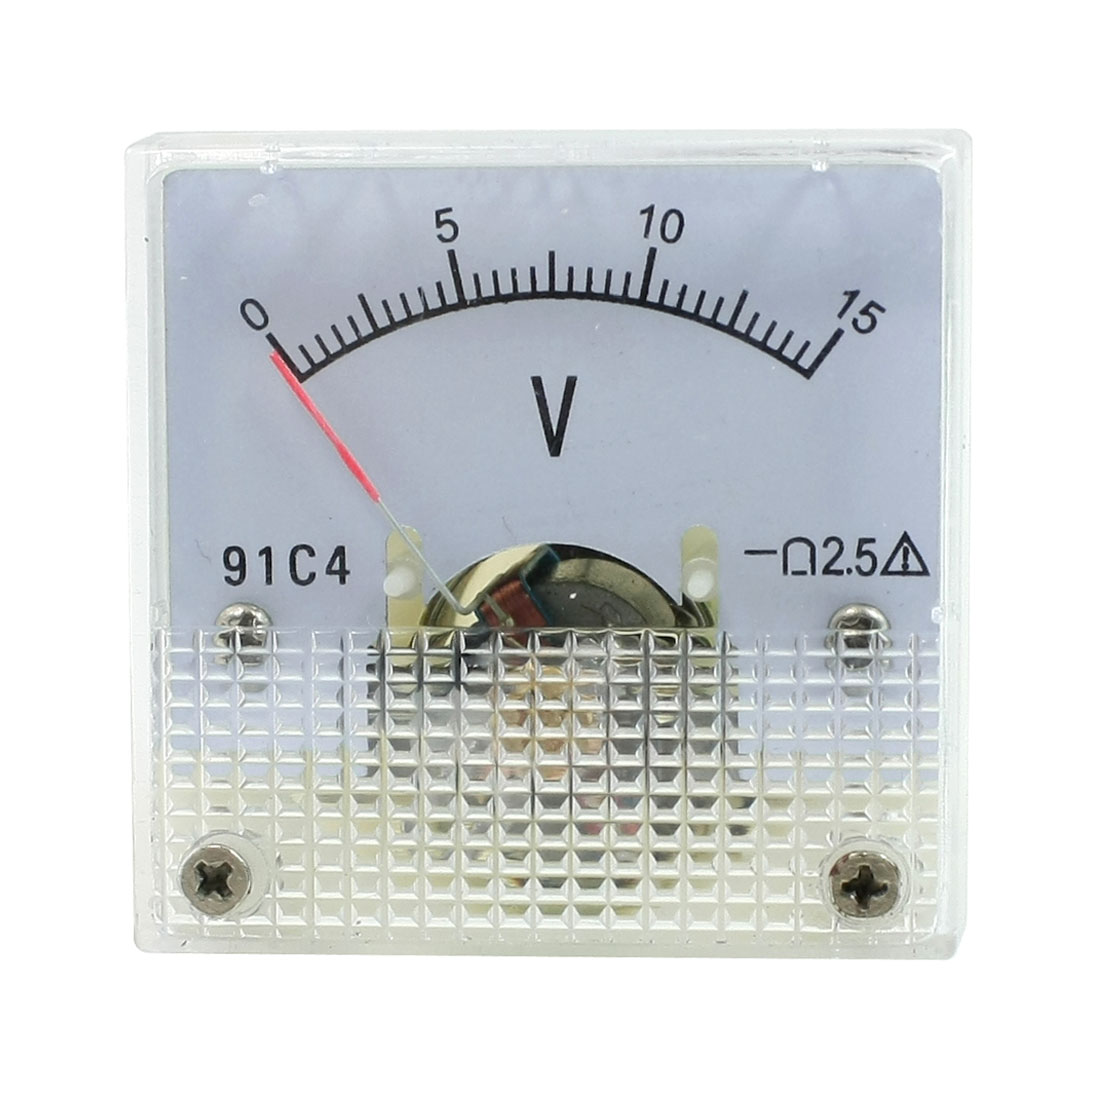 DC 0-15V Class 2.5 Fine Tuning Square Analog Voltage Meter Voltmeter